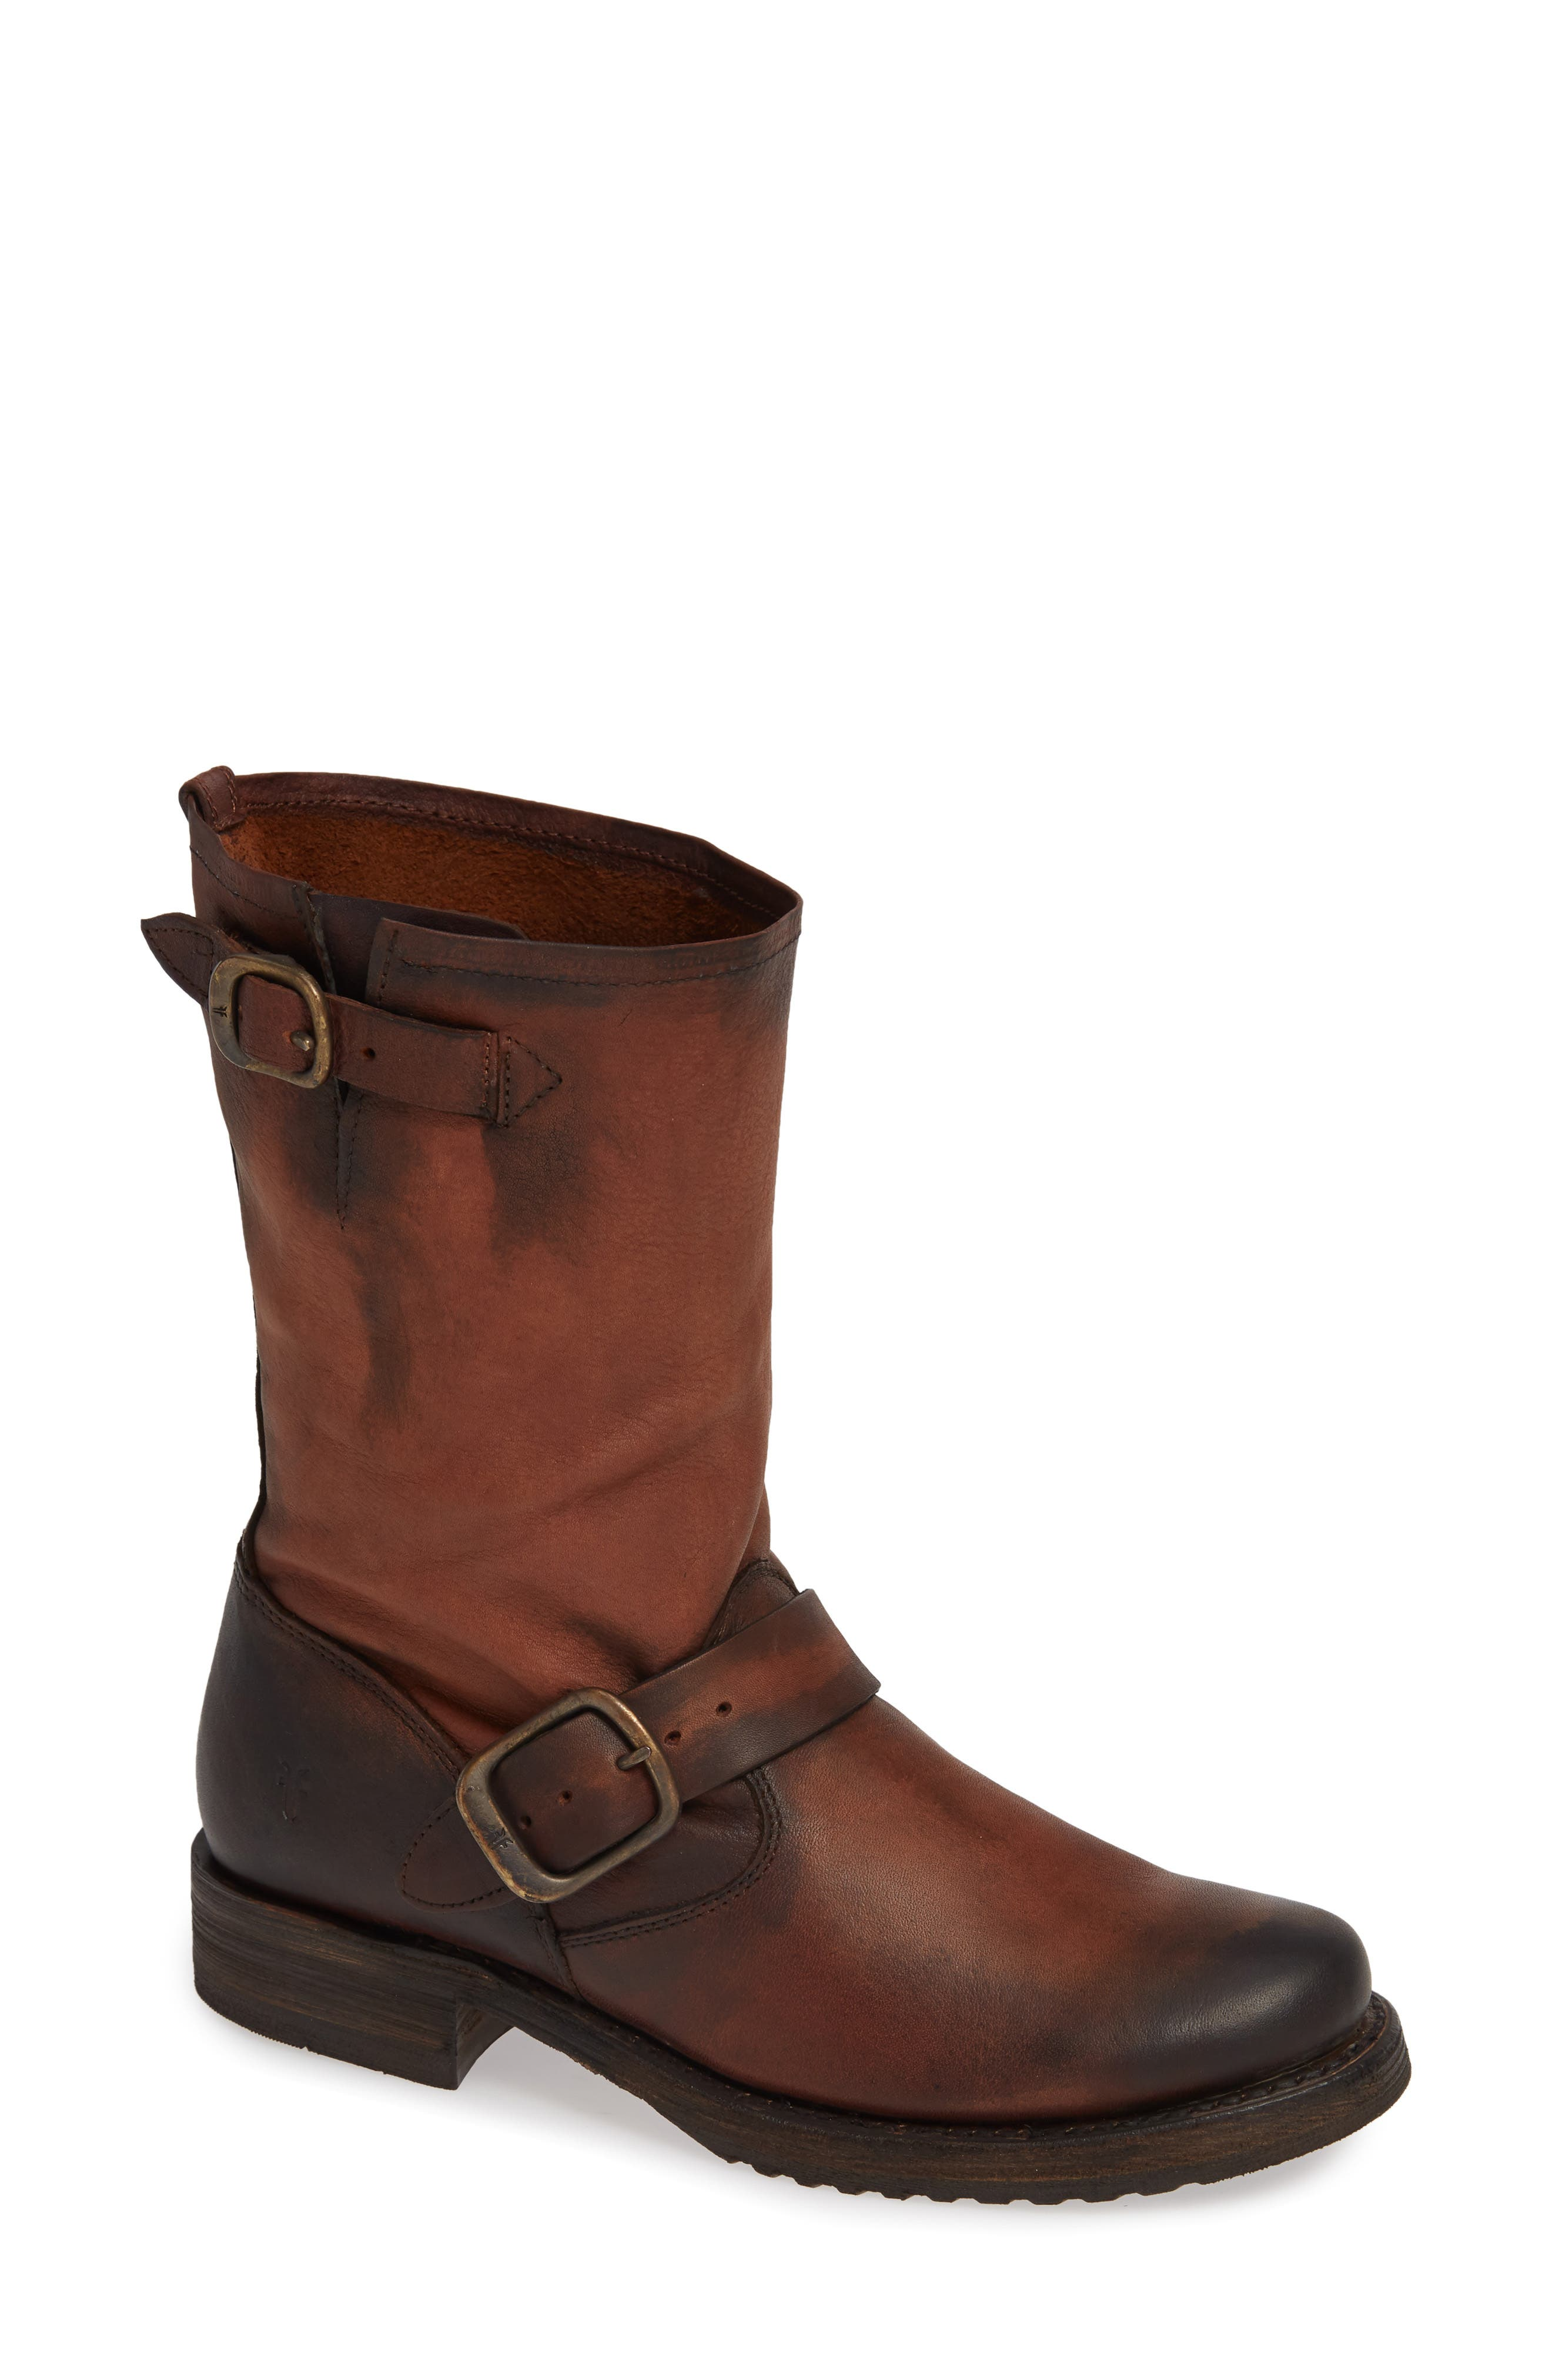 'Veronica' Short Boot,                             Main thumbnail 1, color,                             REDWOOD LEATHER